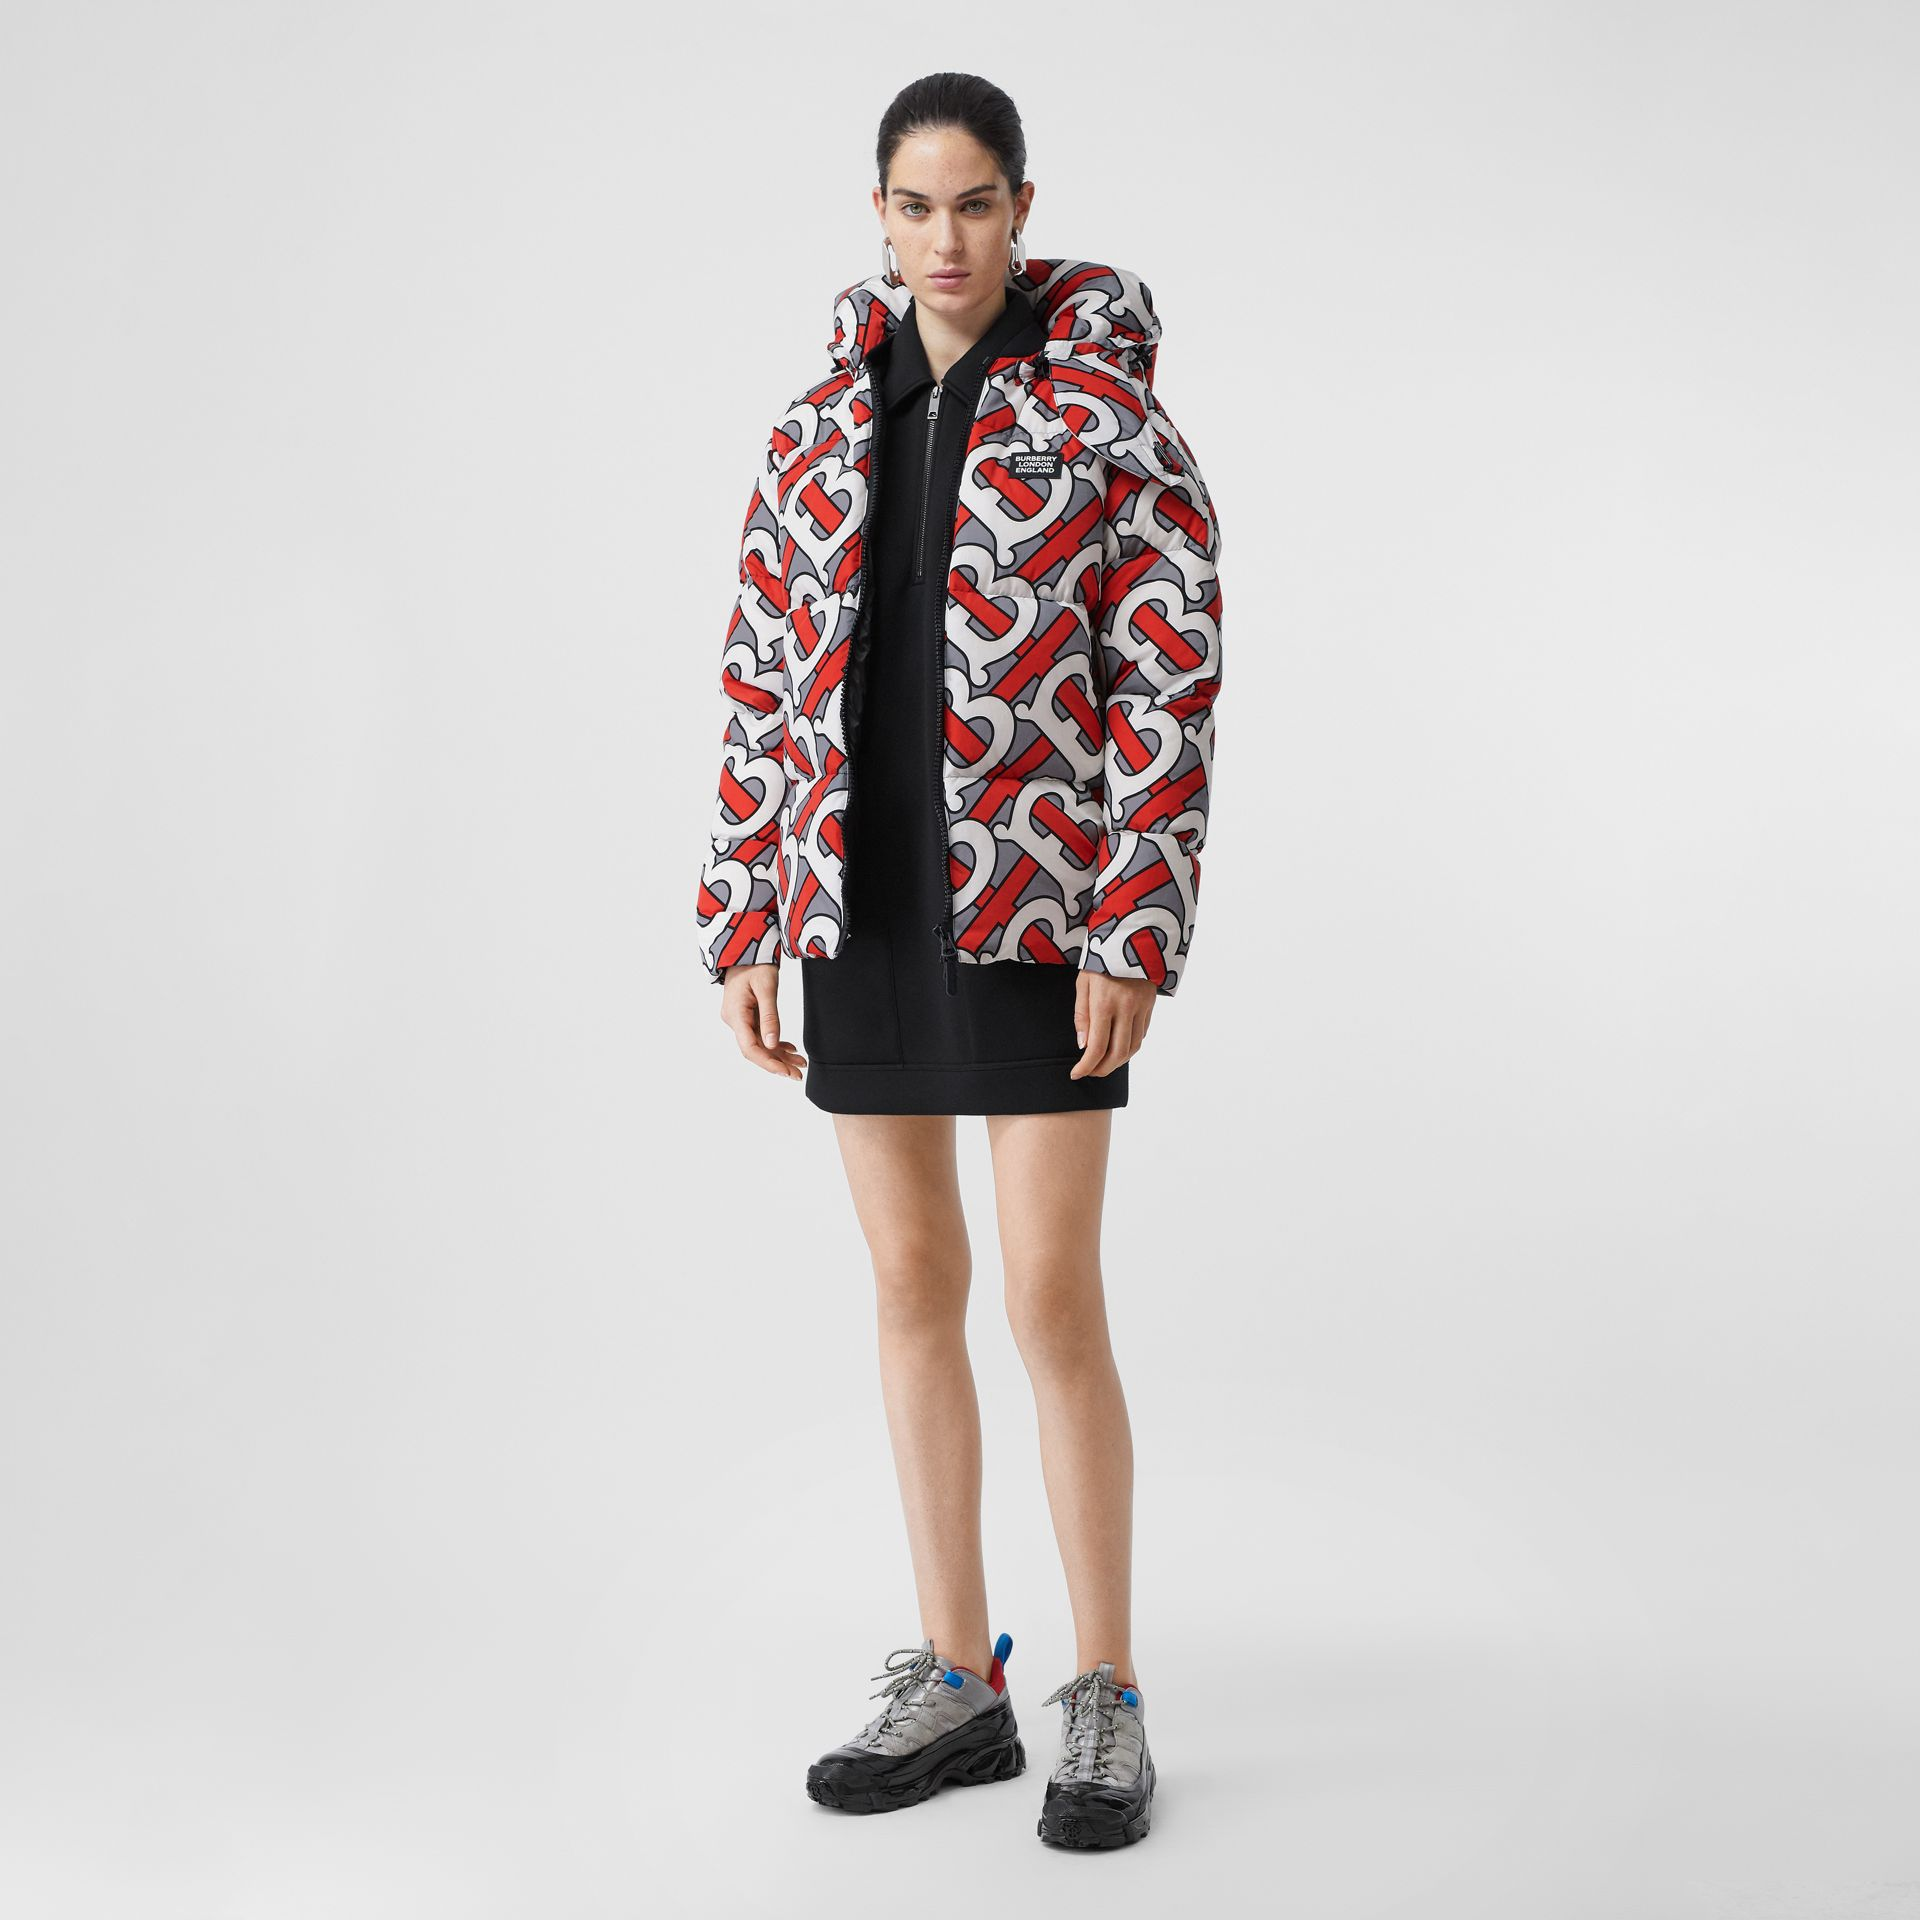 Monogram Print Puffer Jacket in Steel Grey | Burberry United Kingdom - gallery image 2